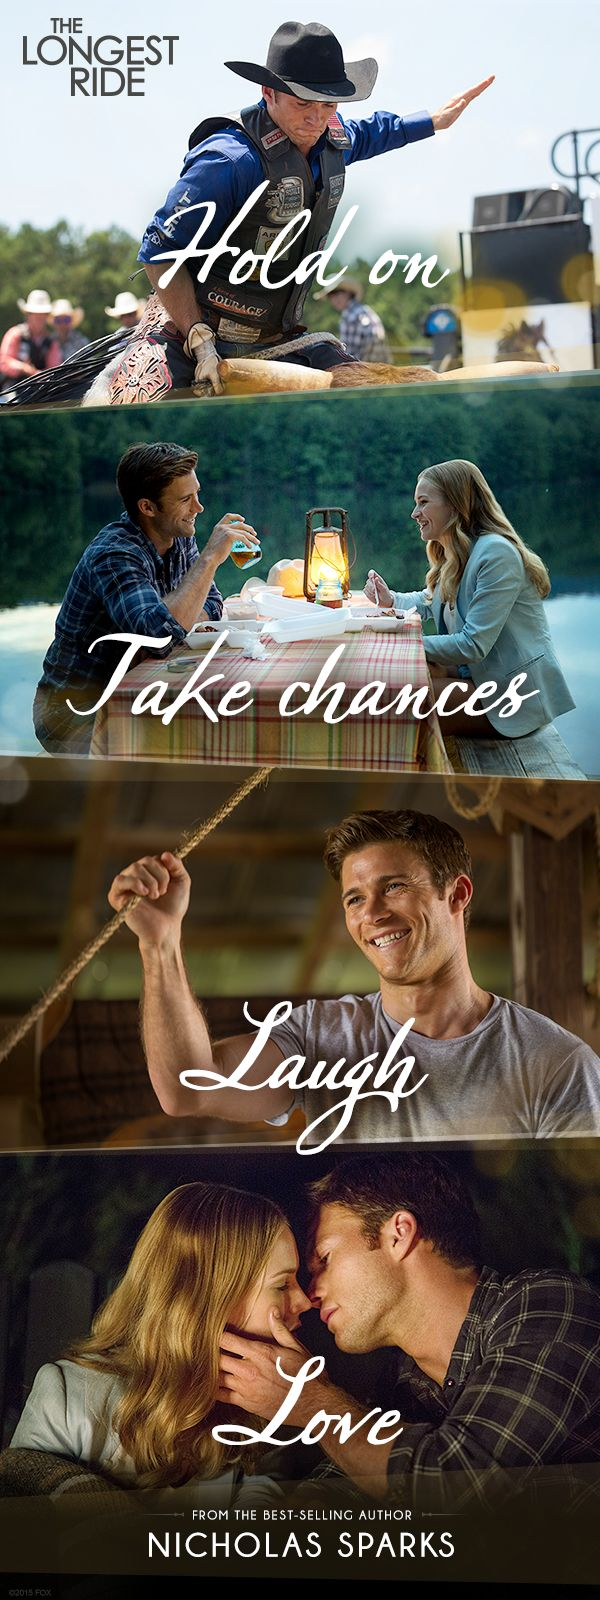 Relationship goals. #LongestRide Watch it on Digital HD this July